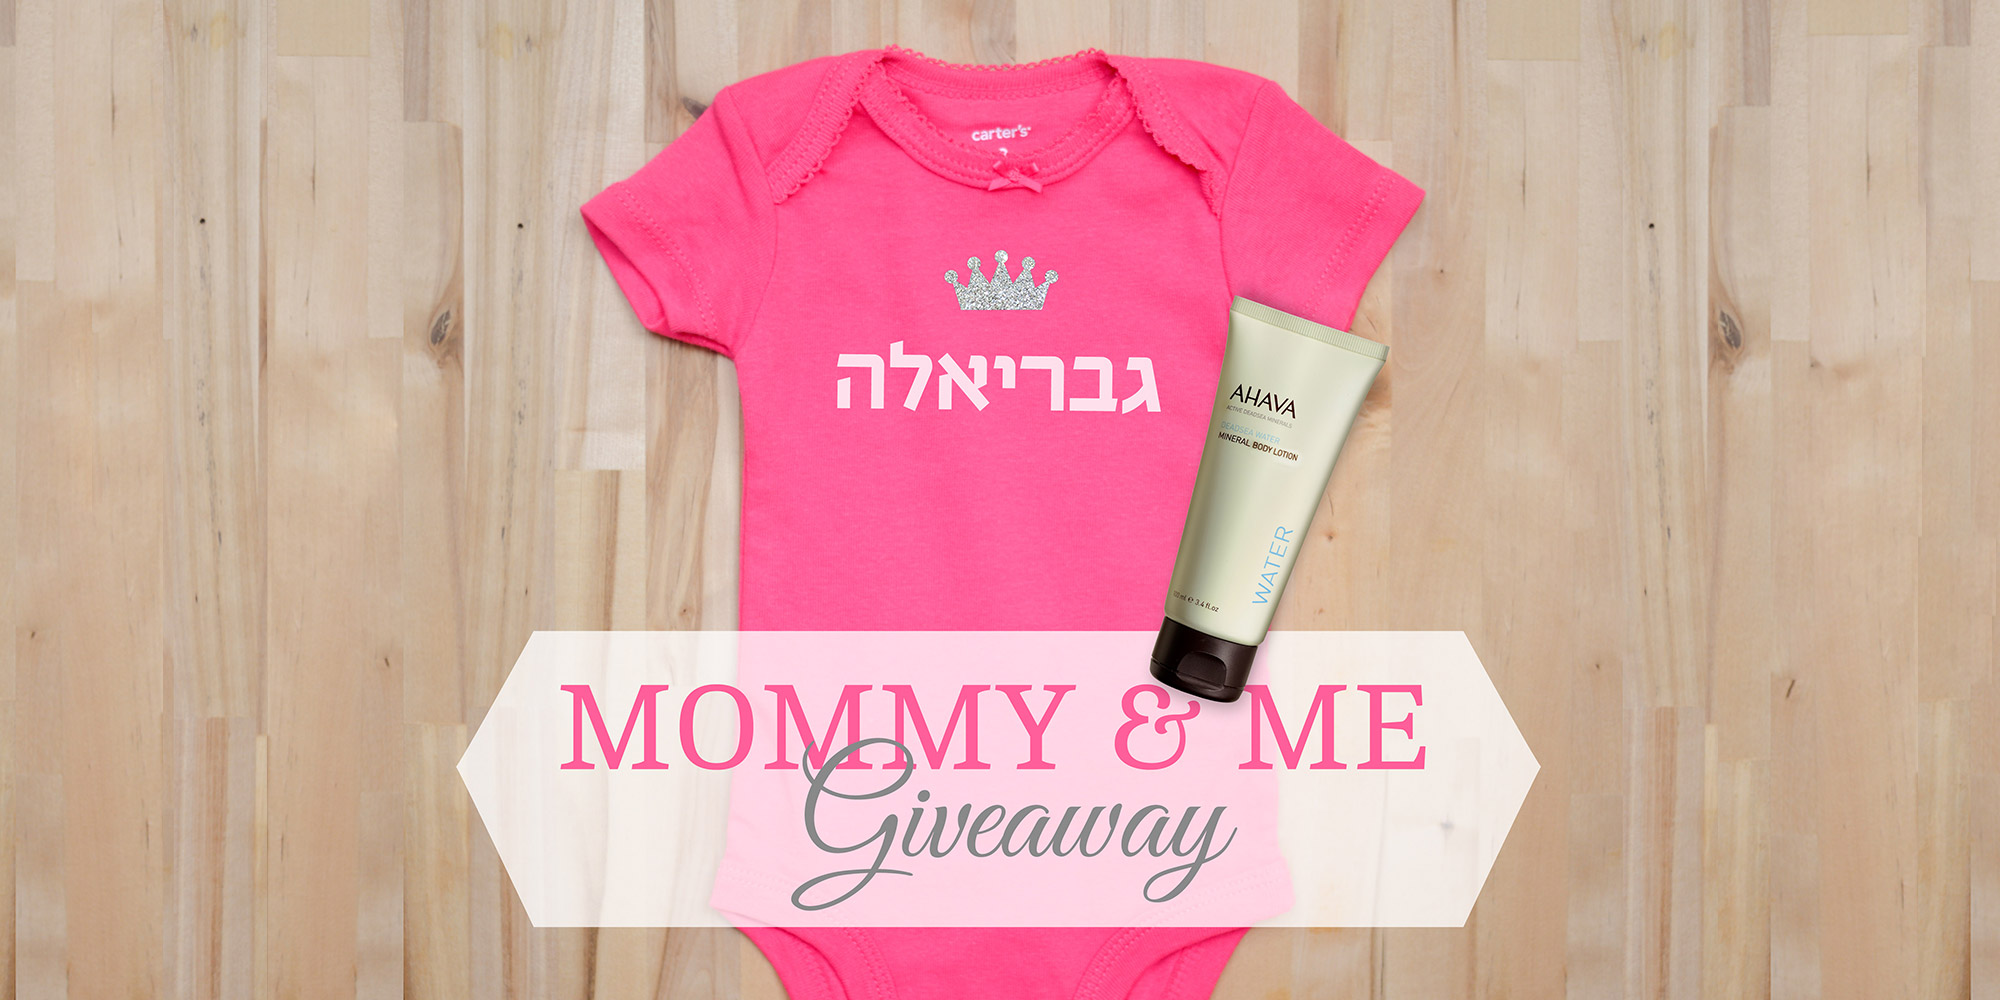 Mommy & Me Instagram Giveaway!